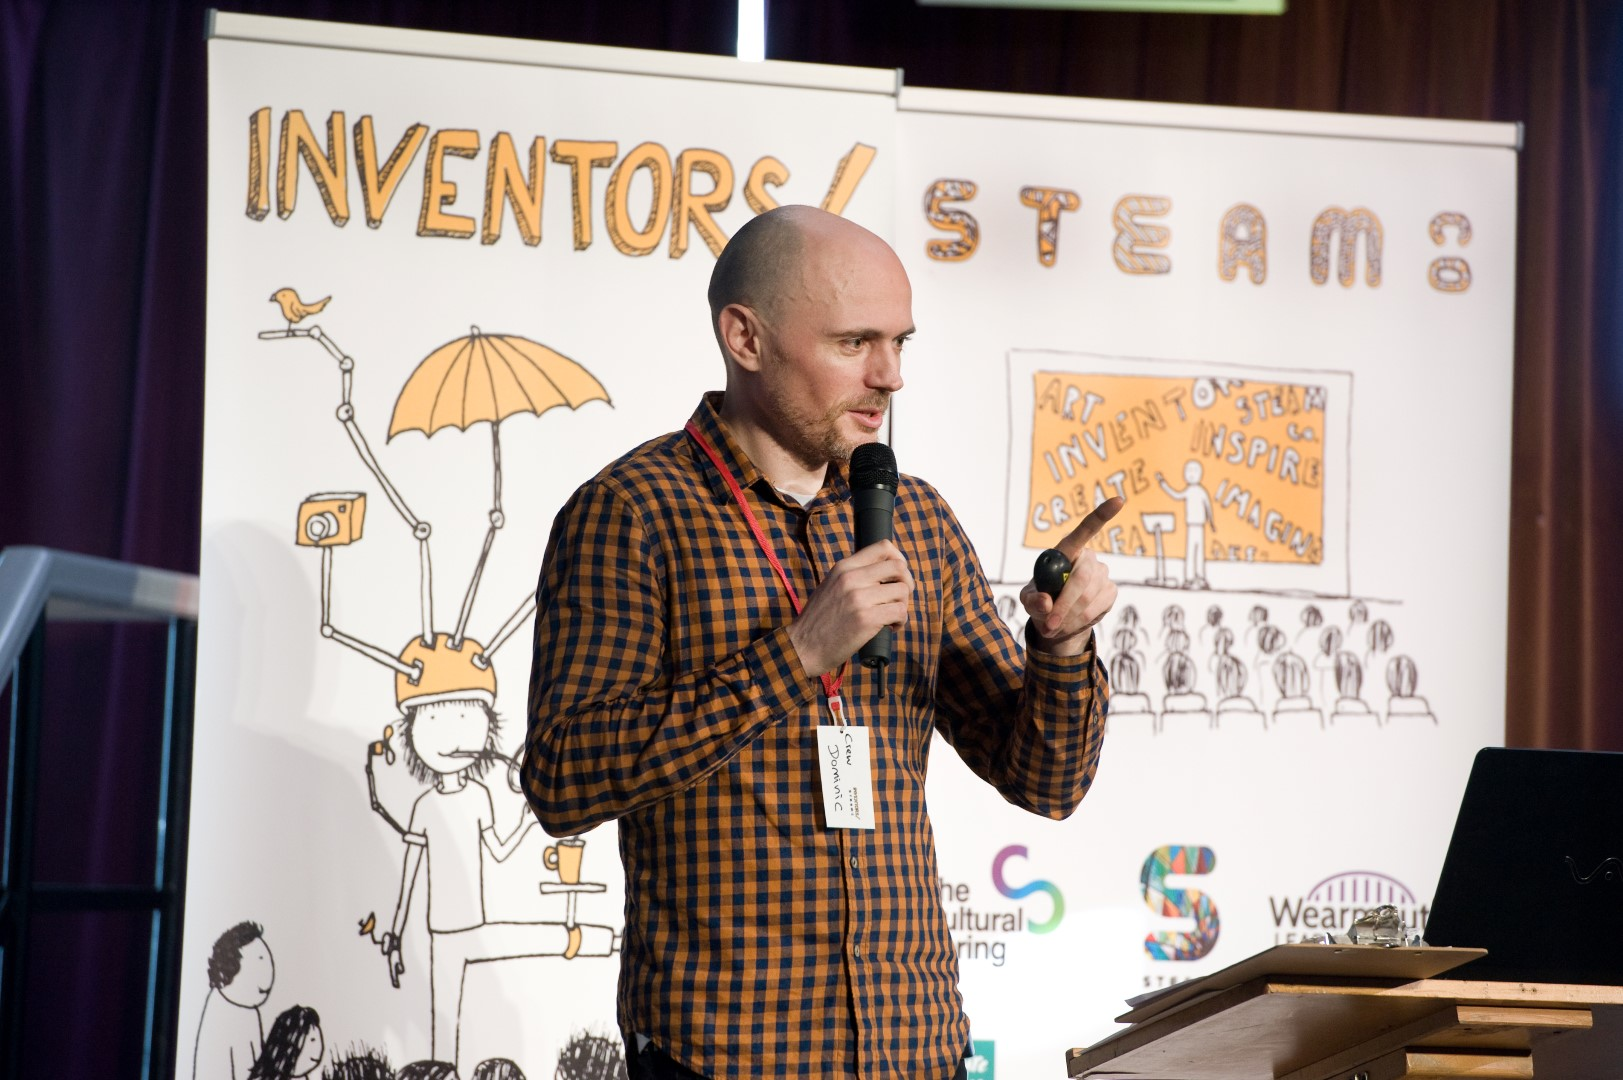 SCOSU INVENTORS STEAM Co. Day pic CD (183) (Large).jpg